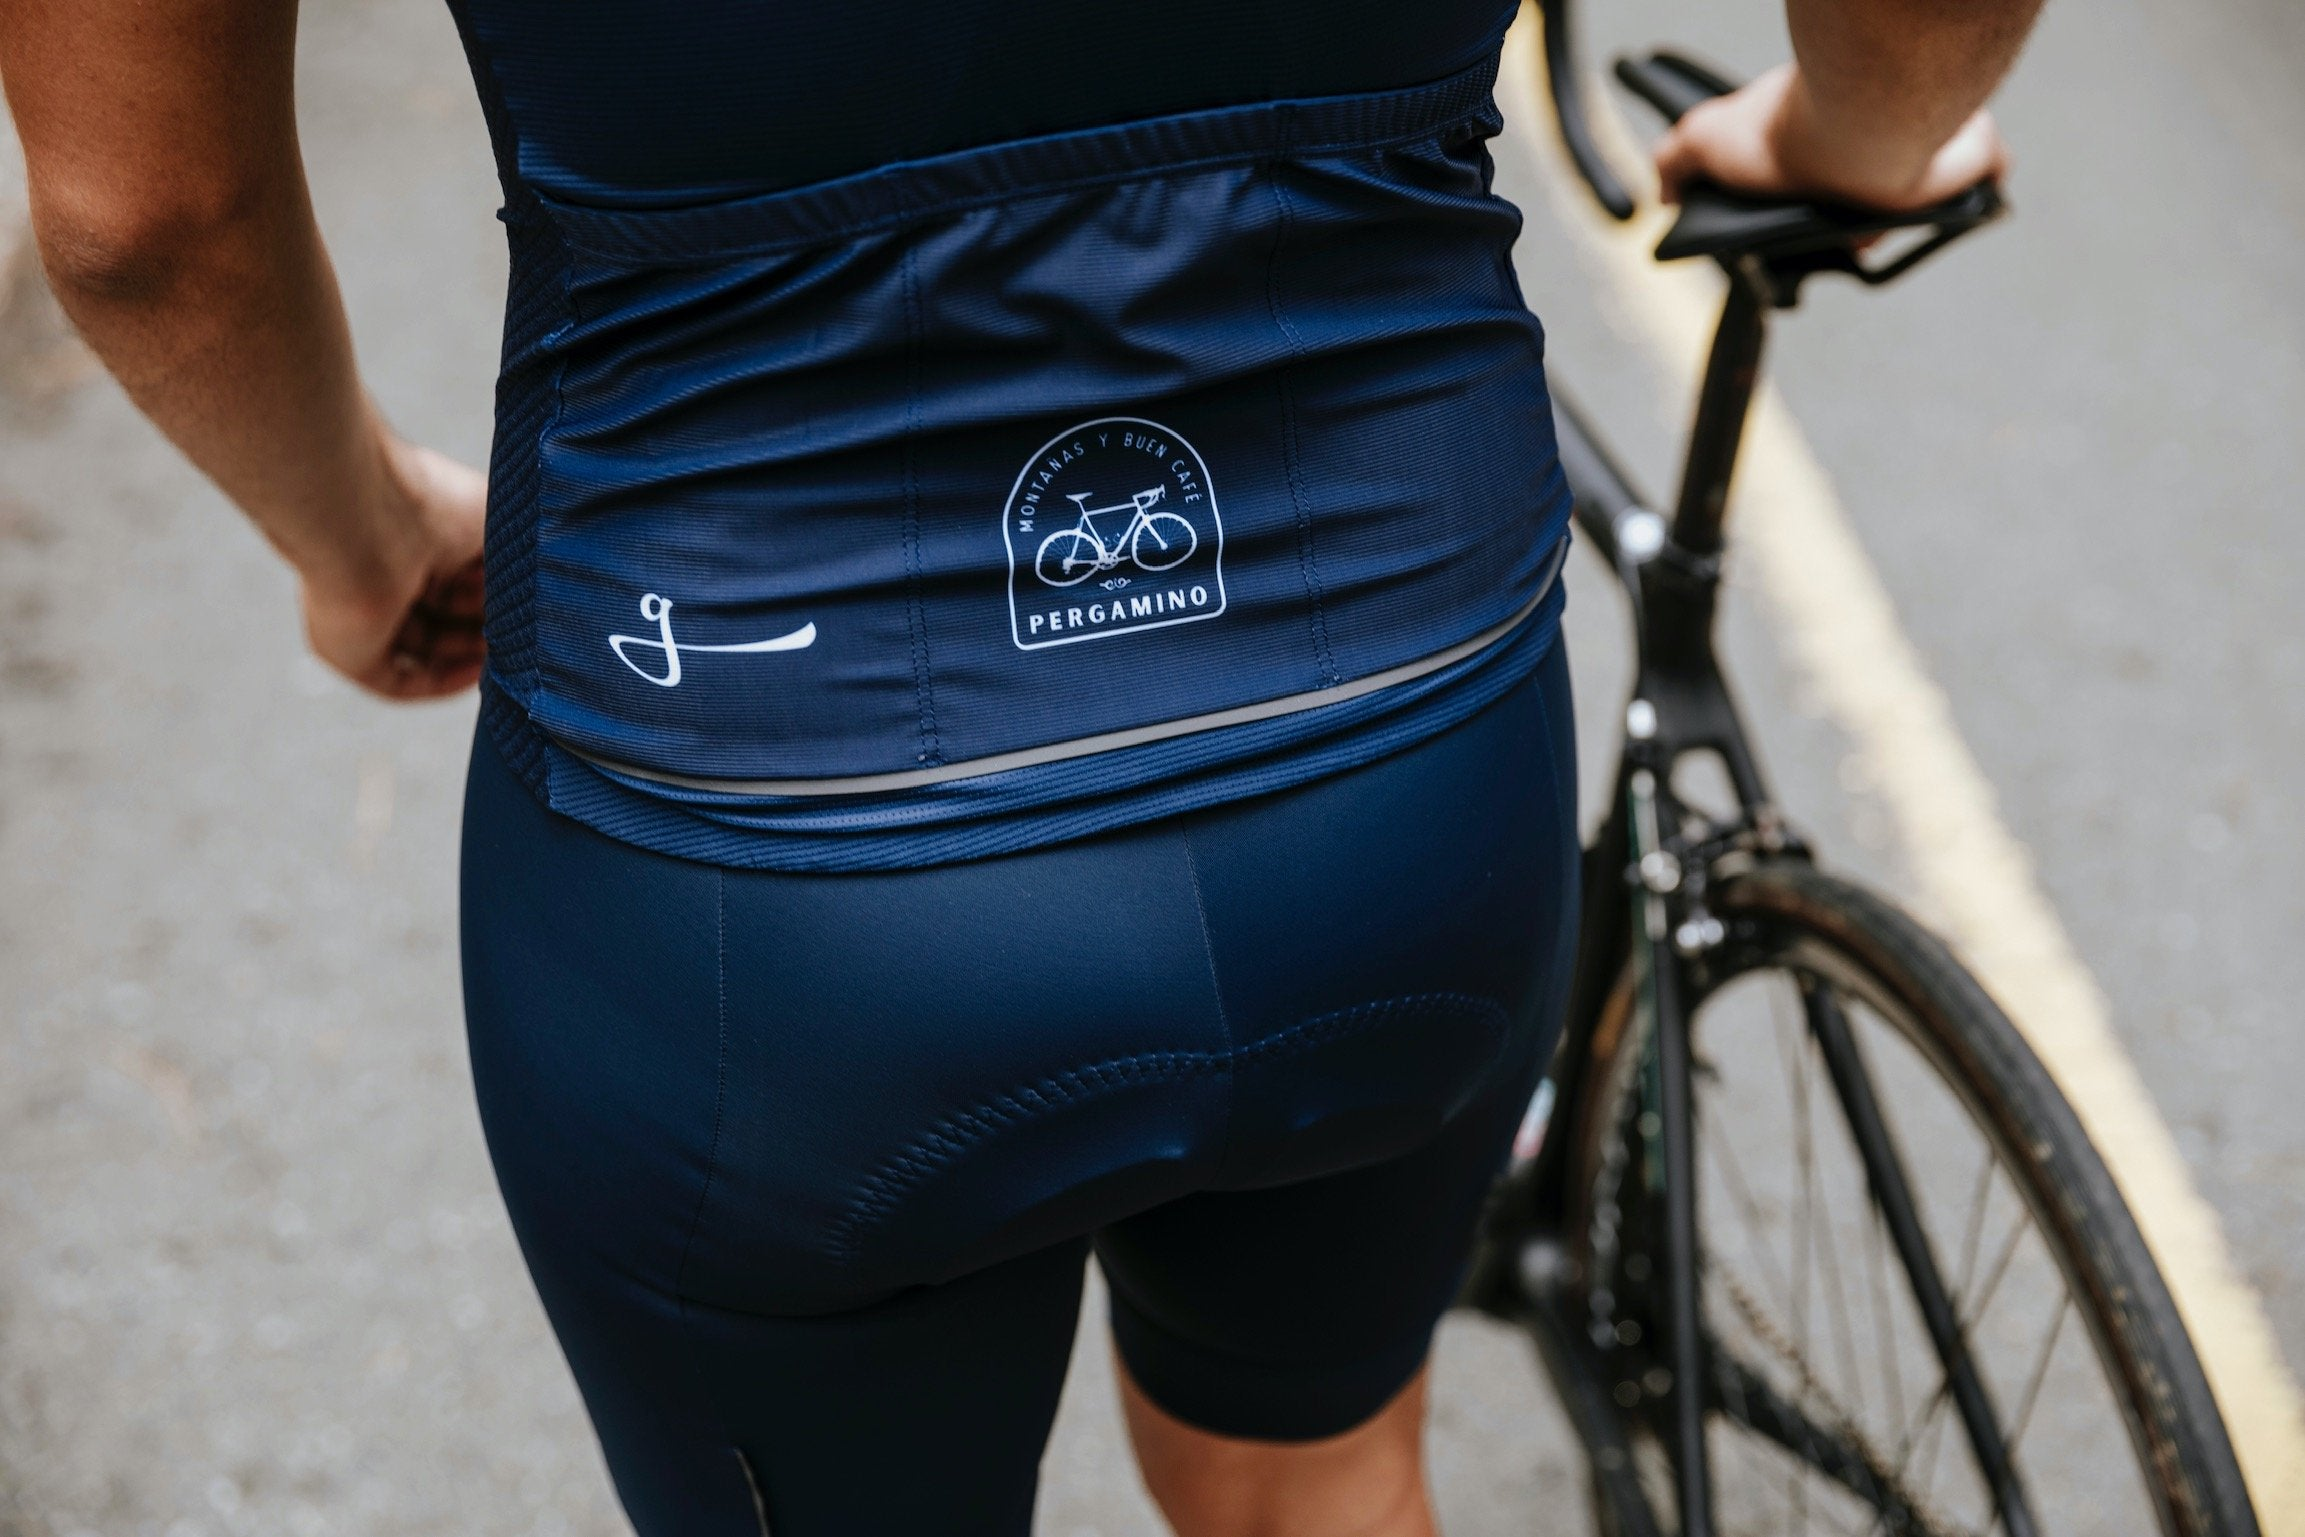 PERGAMINO Cycling Bib Shorts by Givelo